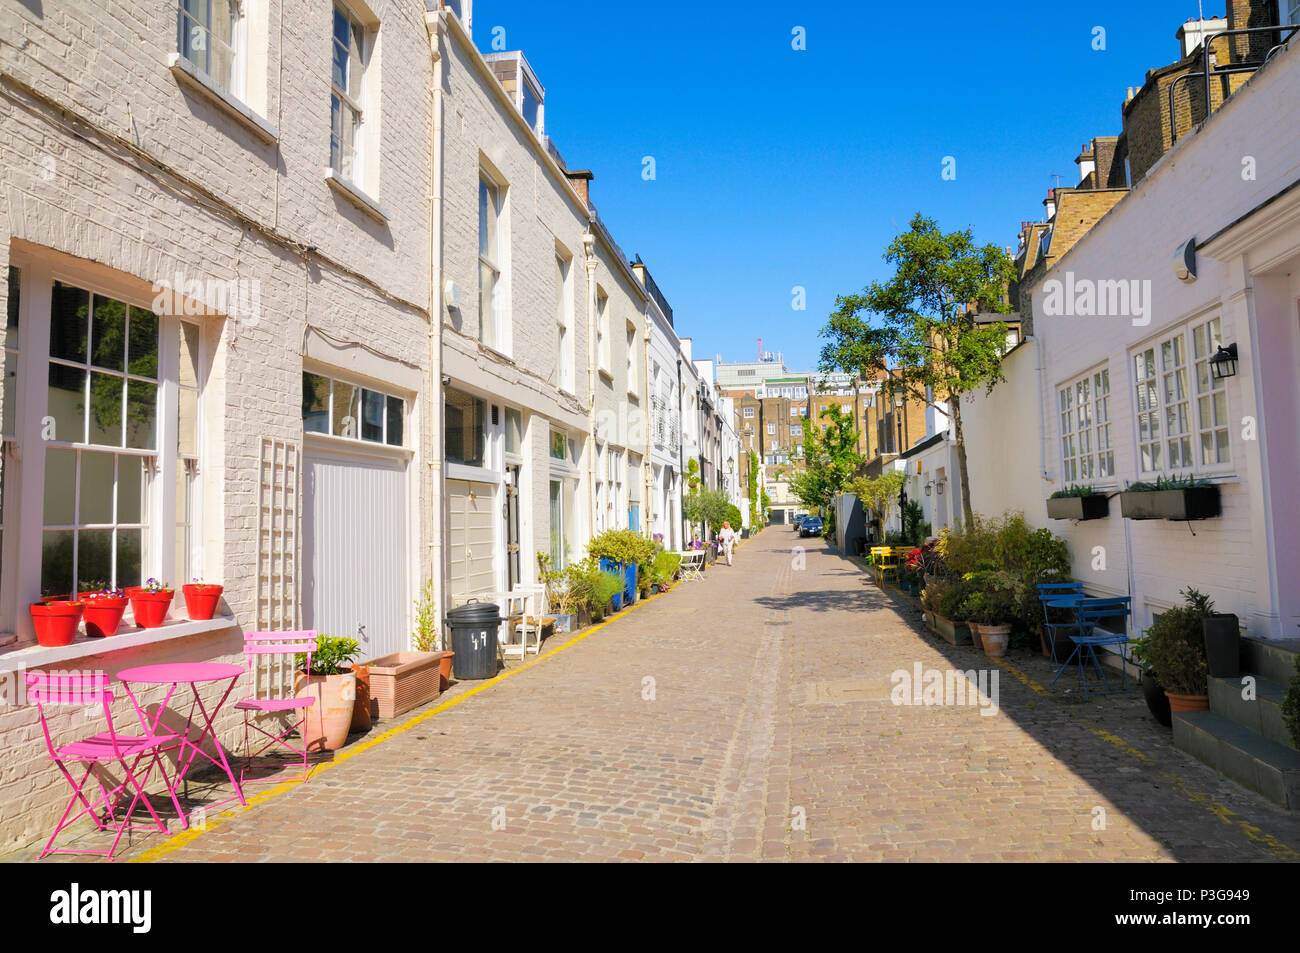 Queen's Gate Mews, South Kensington, Royal Borough of Kensington and Chelsea, London SW7, England, UK - Stock Image